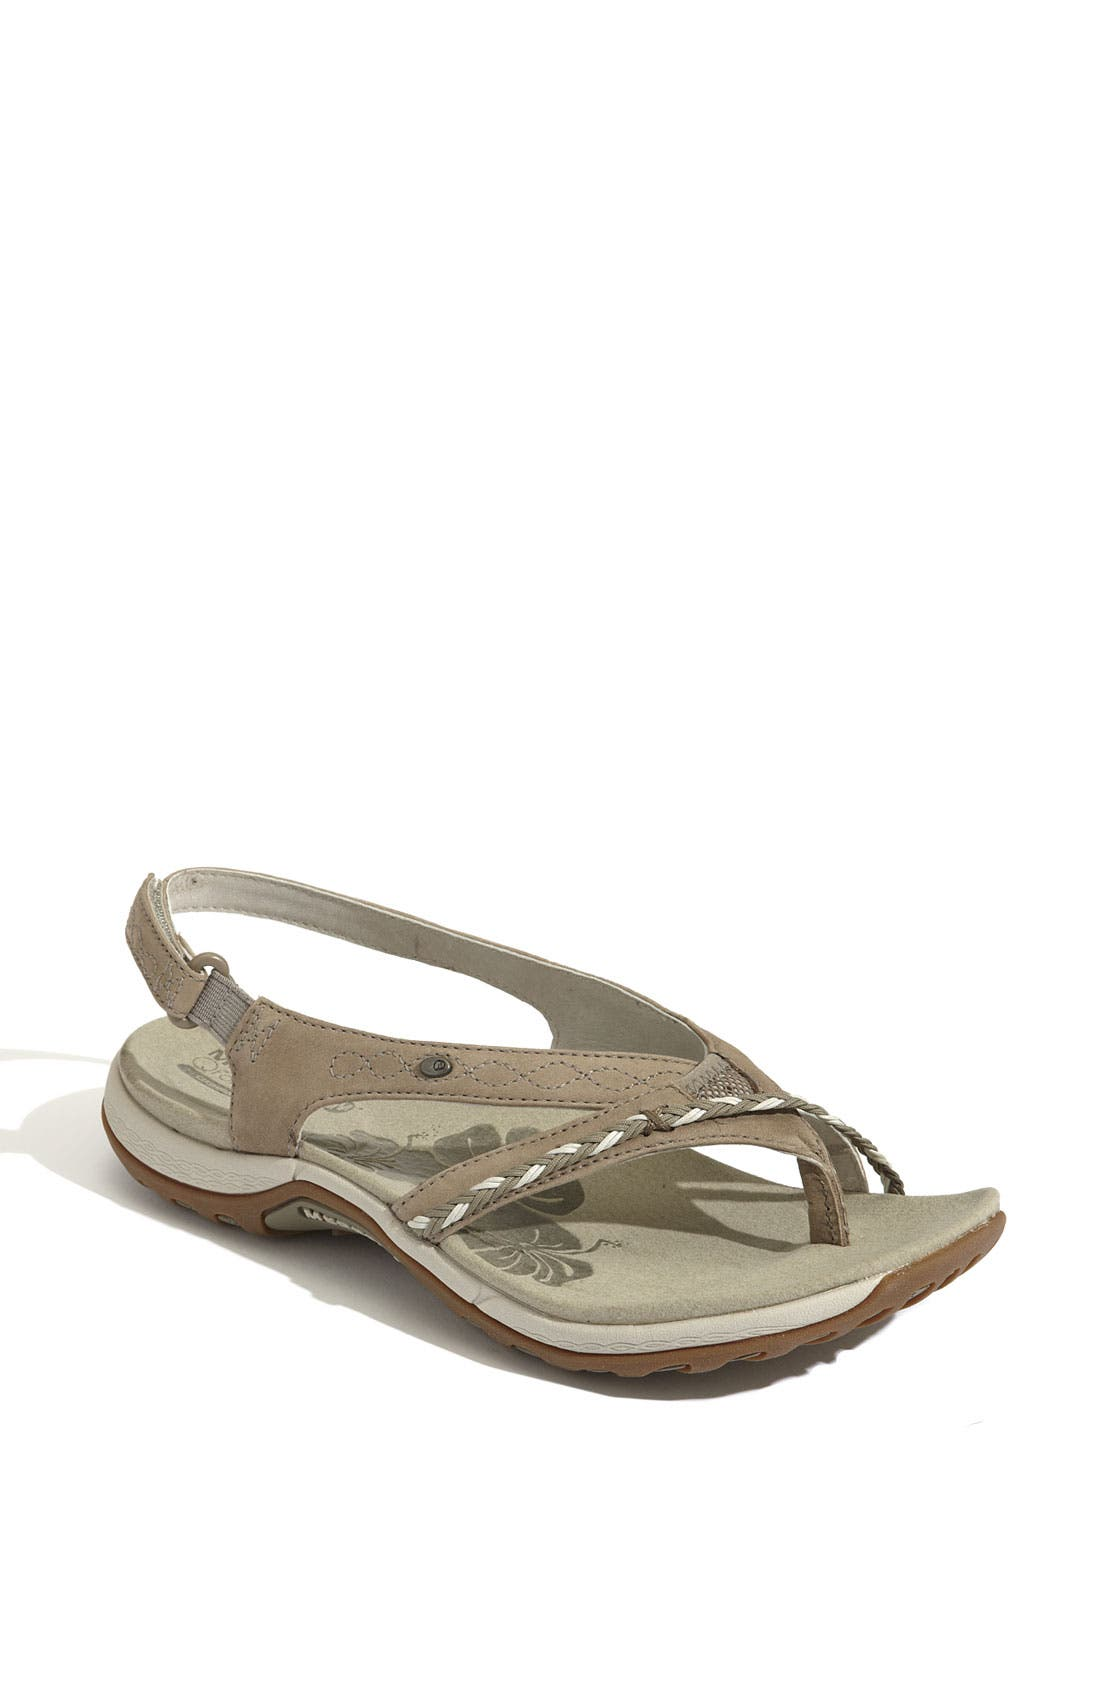 Main Image - Merrell 'Stellabloom' Sandal